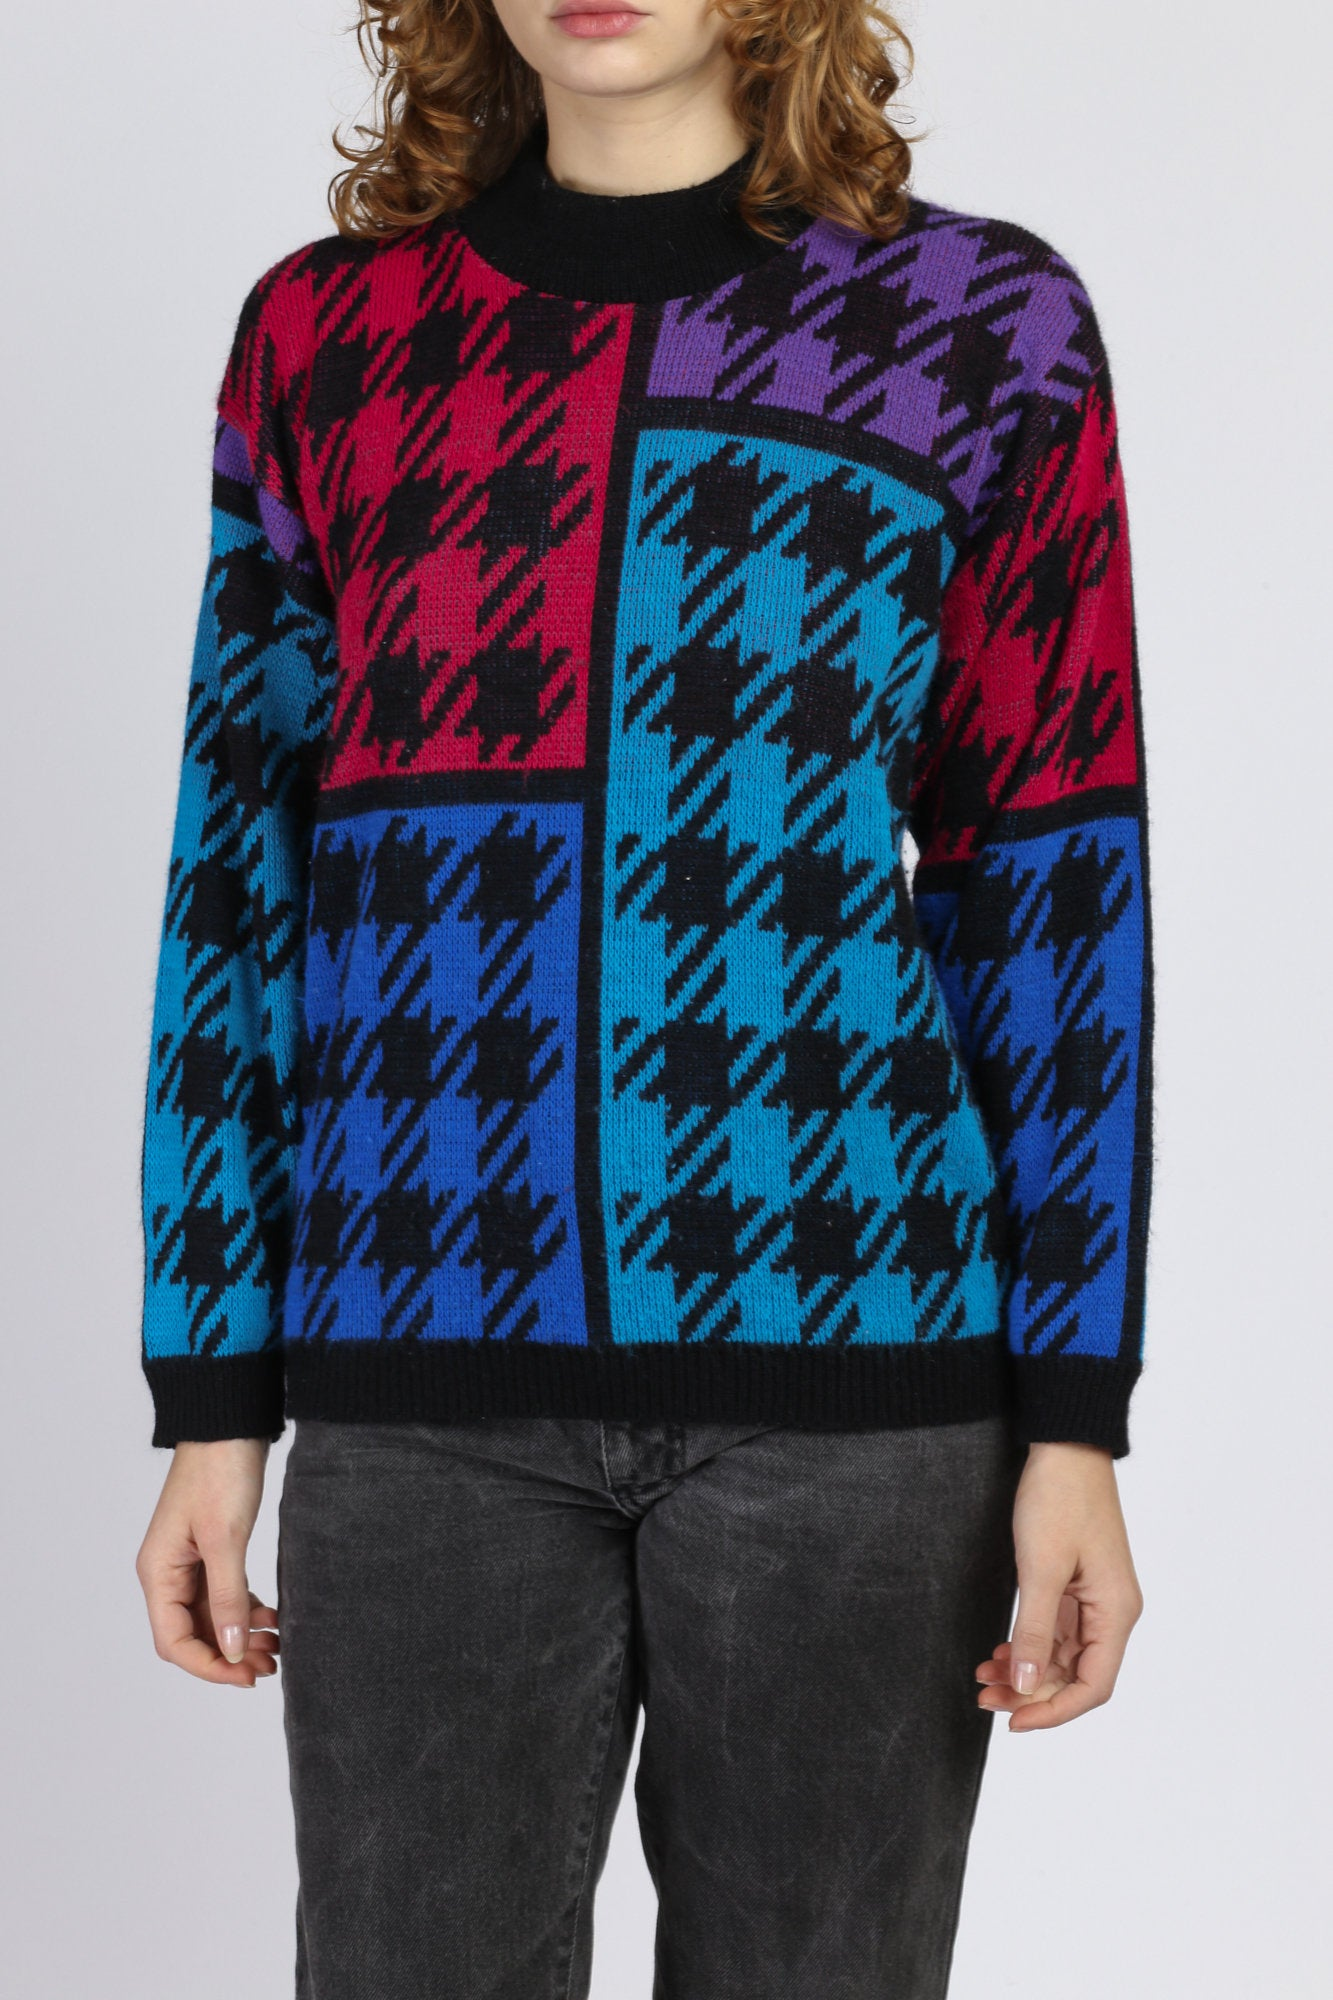 Vintage Color Block Houndstooth Sweater - Small